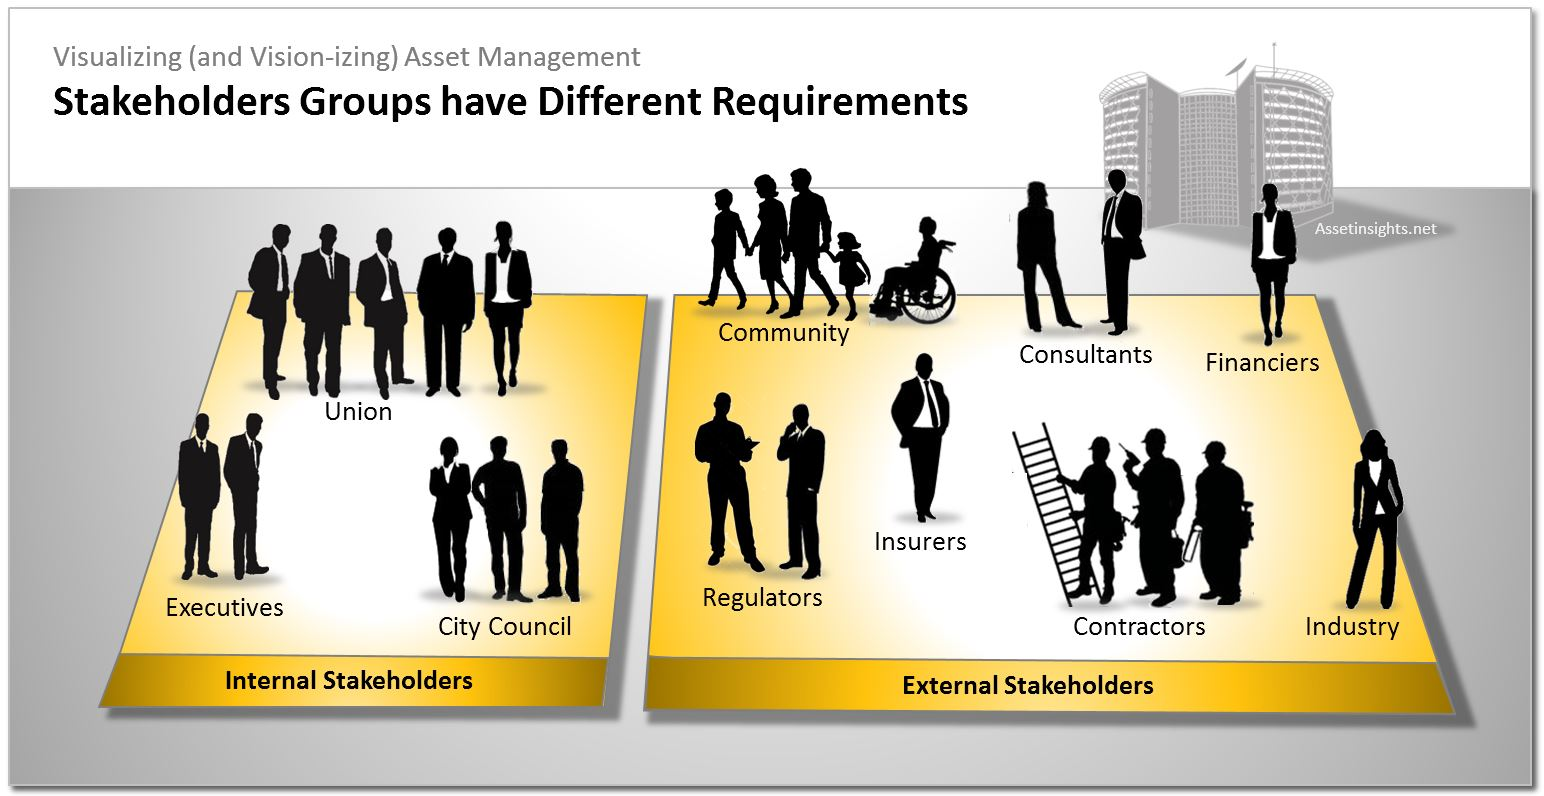 Each stakeholder group has its own requirements that need to be identifed by the organization